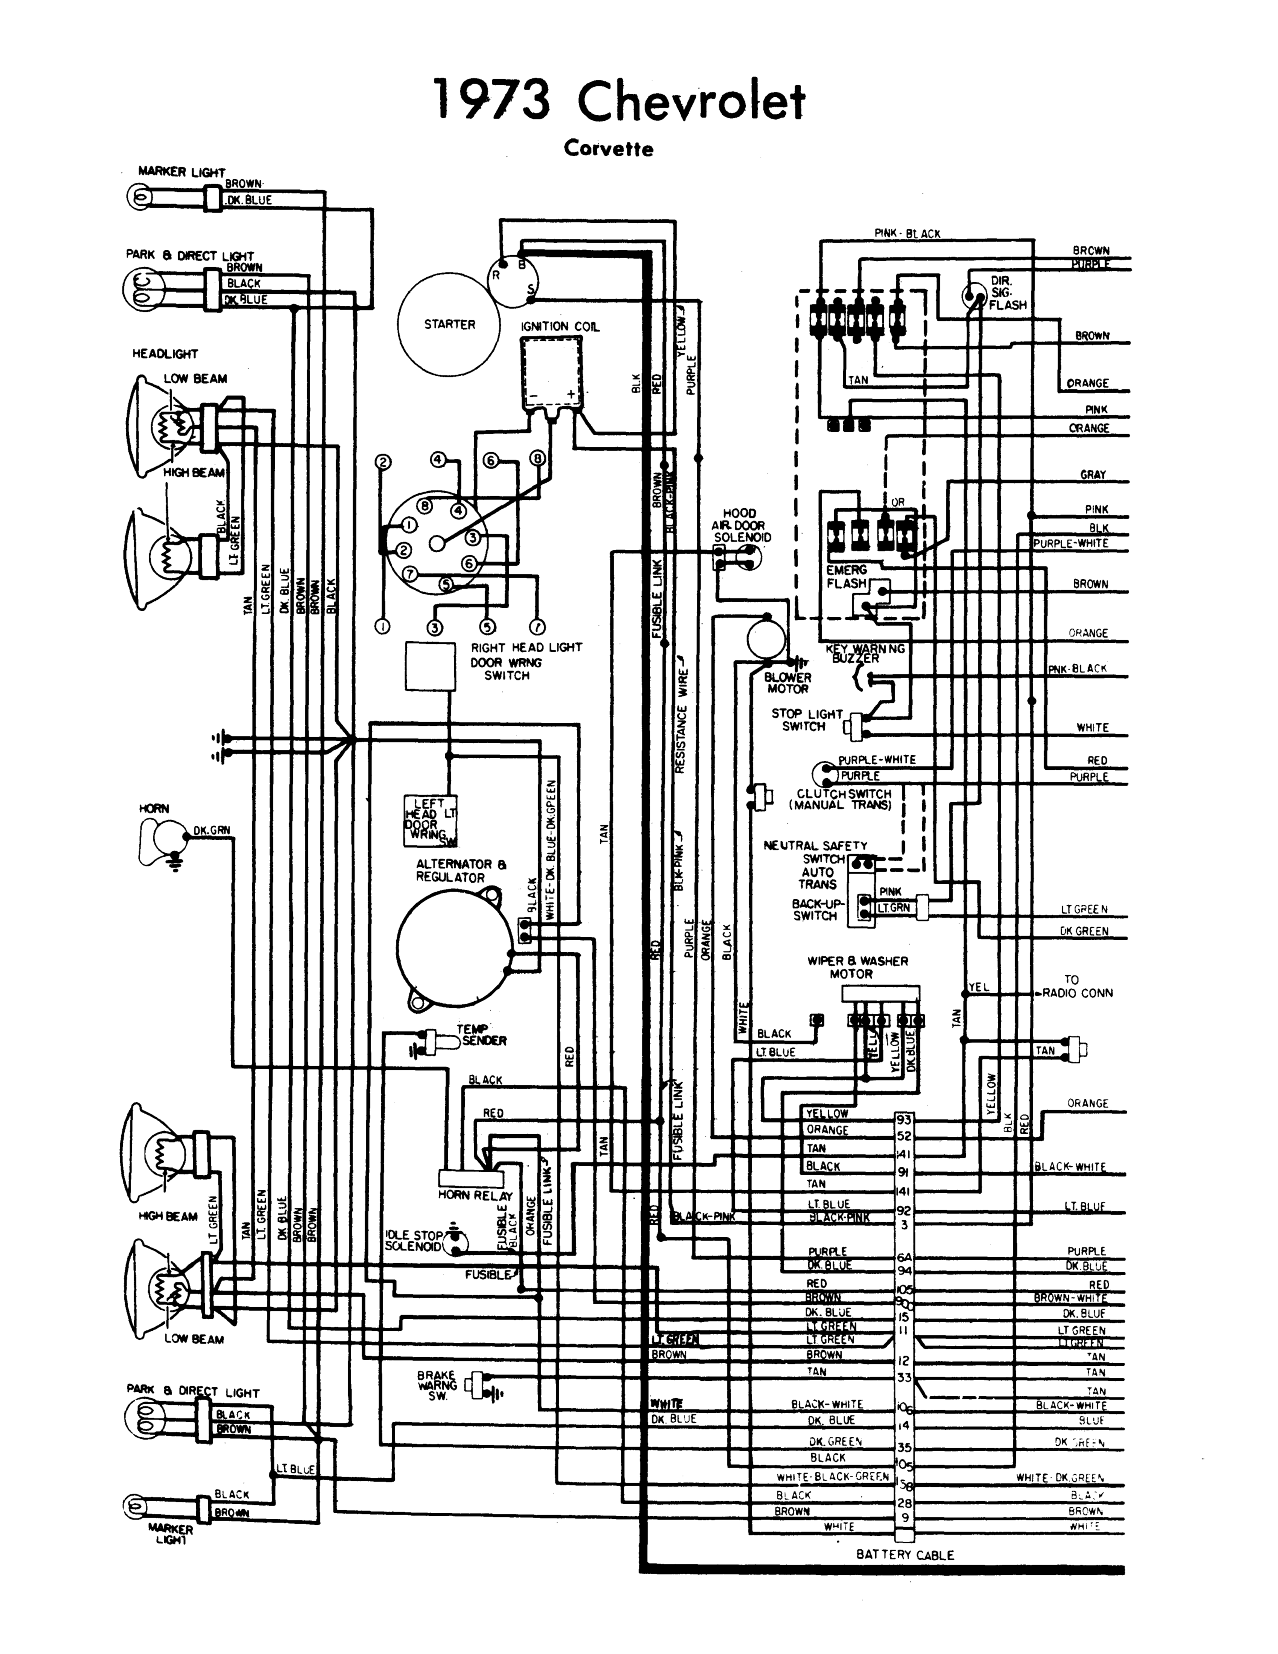 1982 Alfa Romeo Engine Compartment Diagram Wiring 1973 Corvette Chevy Diagrams